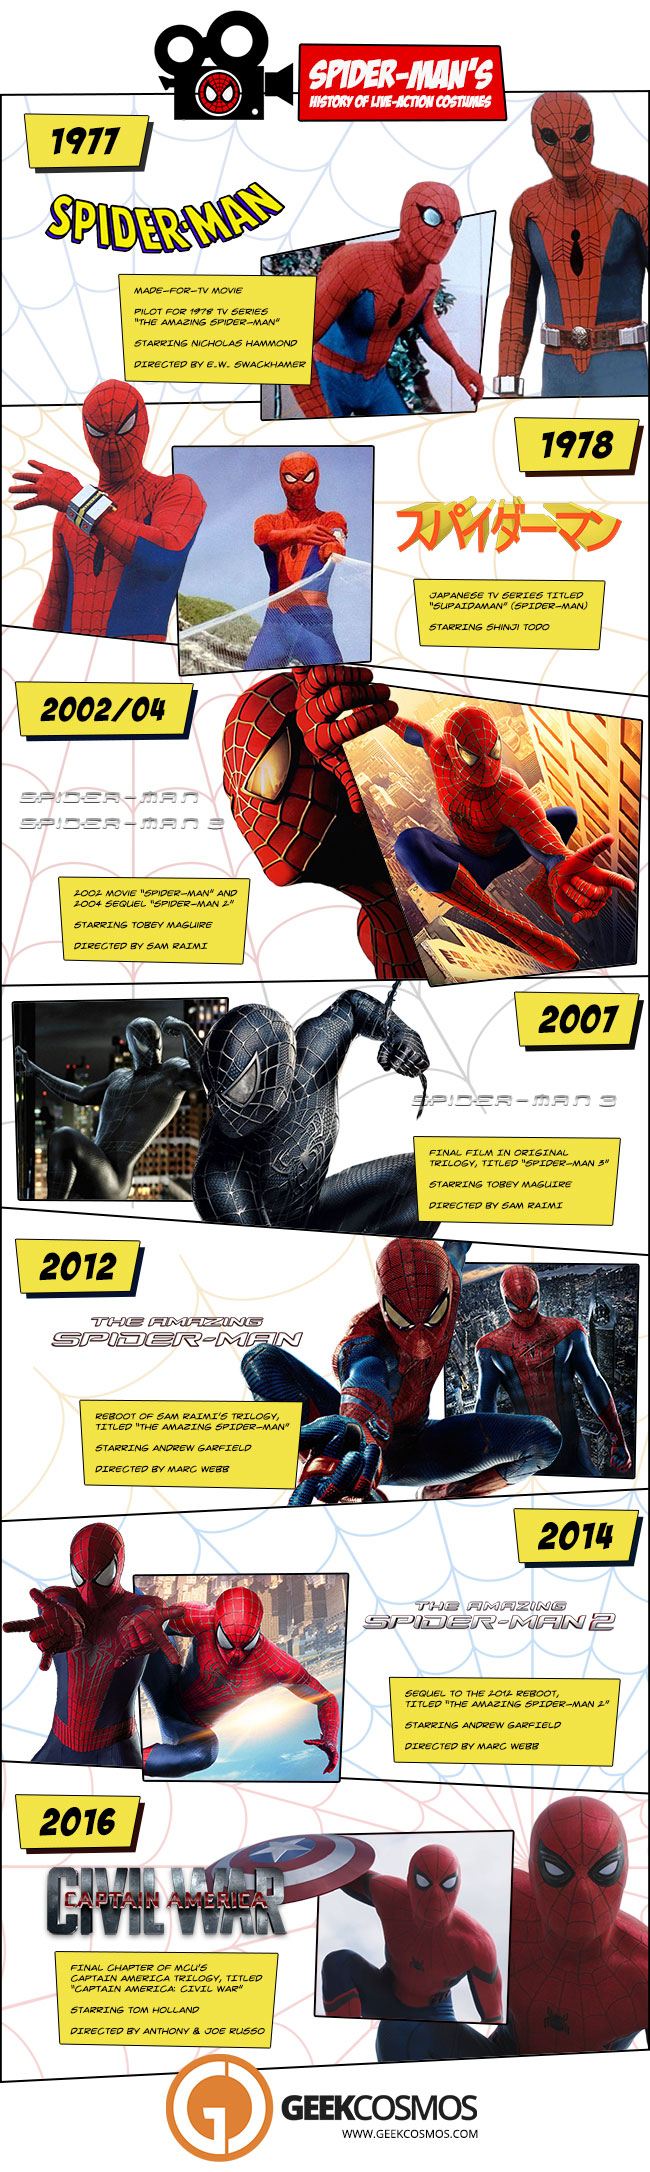 Spider-Man-movies-tv-series-costumes-history_inforgraphic_resized